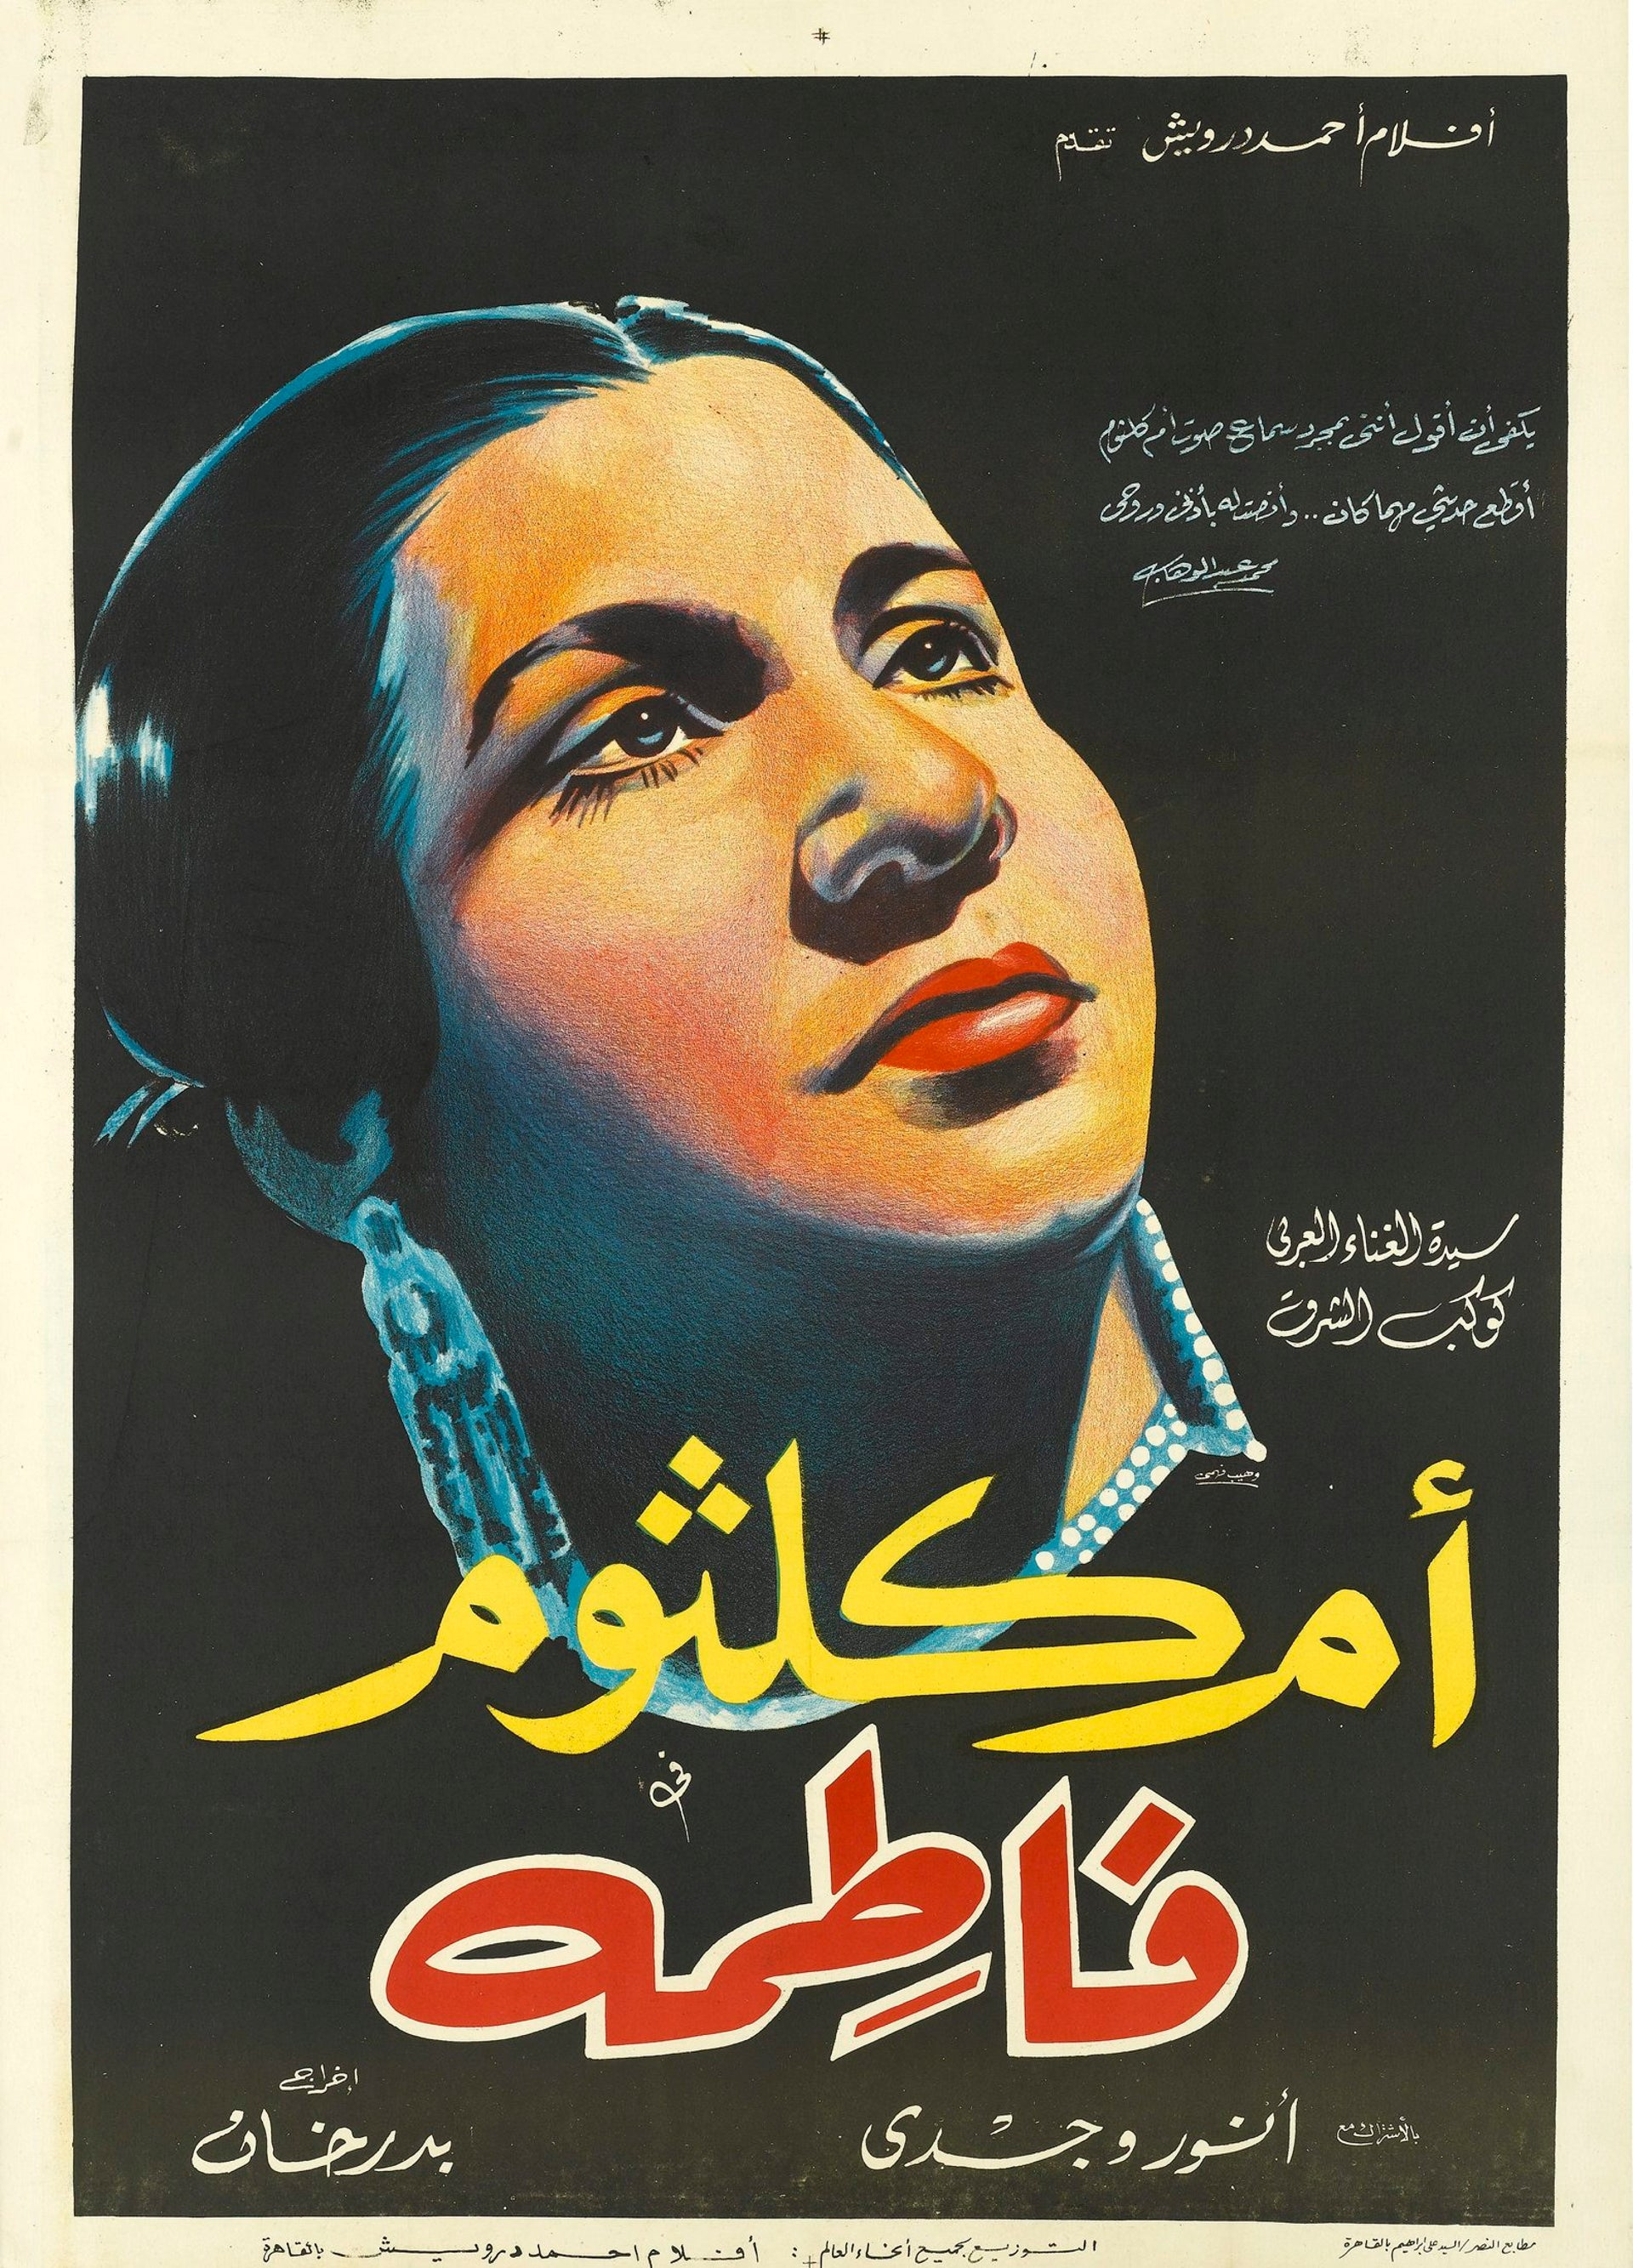 Egyptian actress-singer Umm Kulthum appearing on a poster for the Egyptian film 'Fatima.'